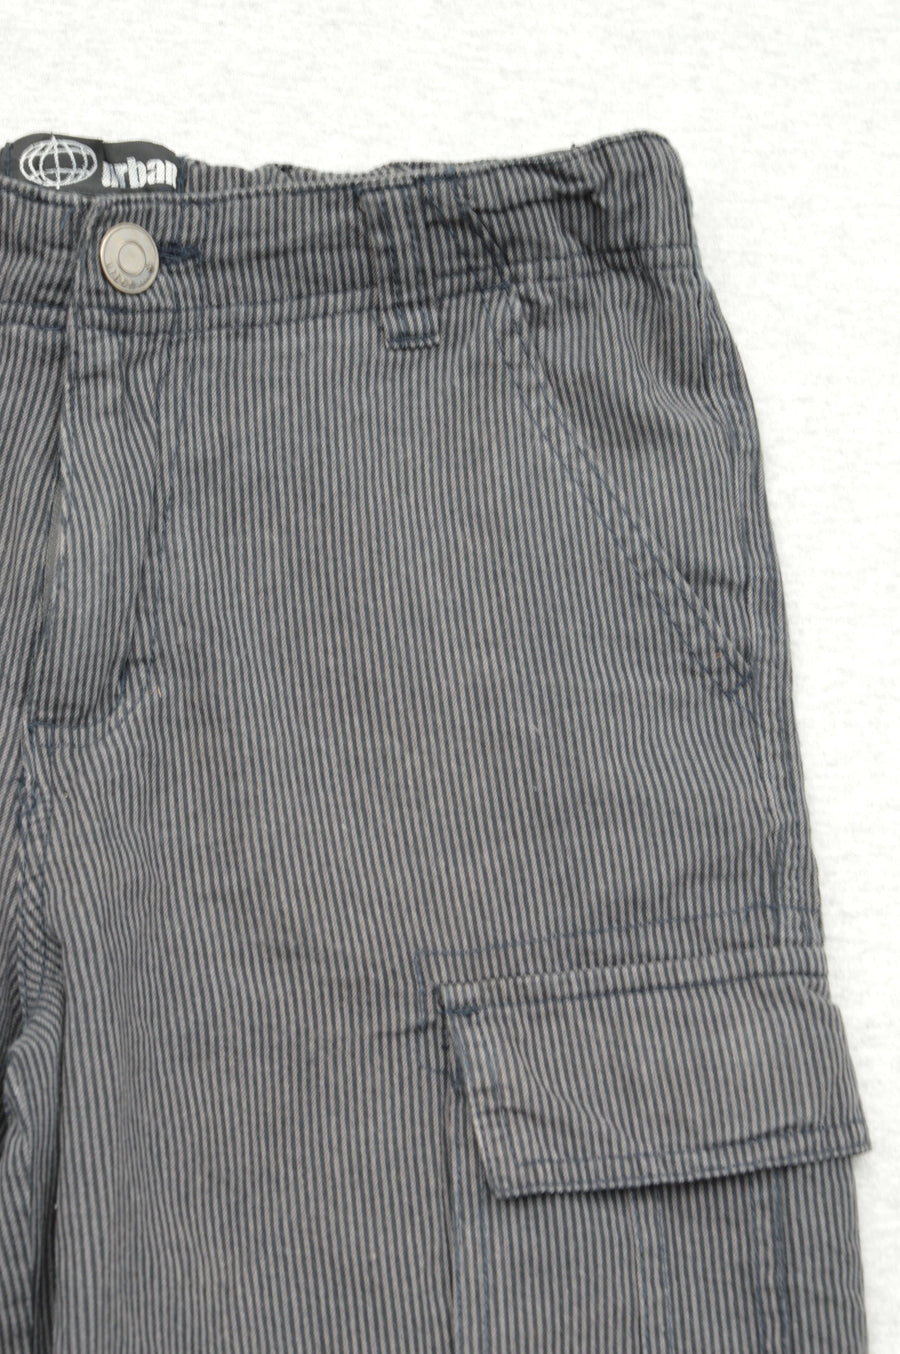 Urban grey & black striped cargo shorts, size 10